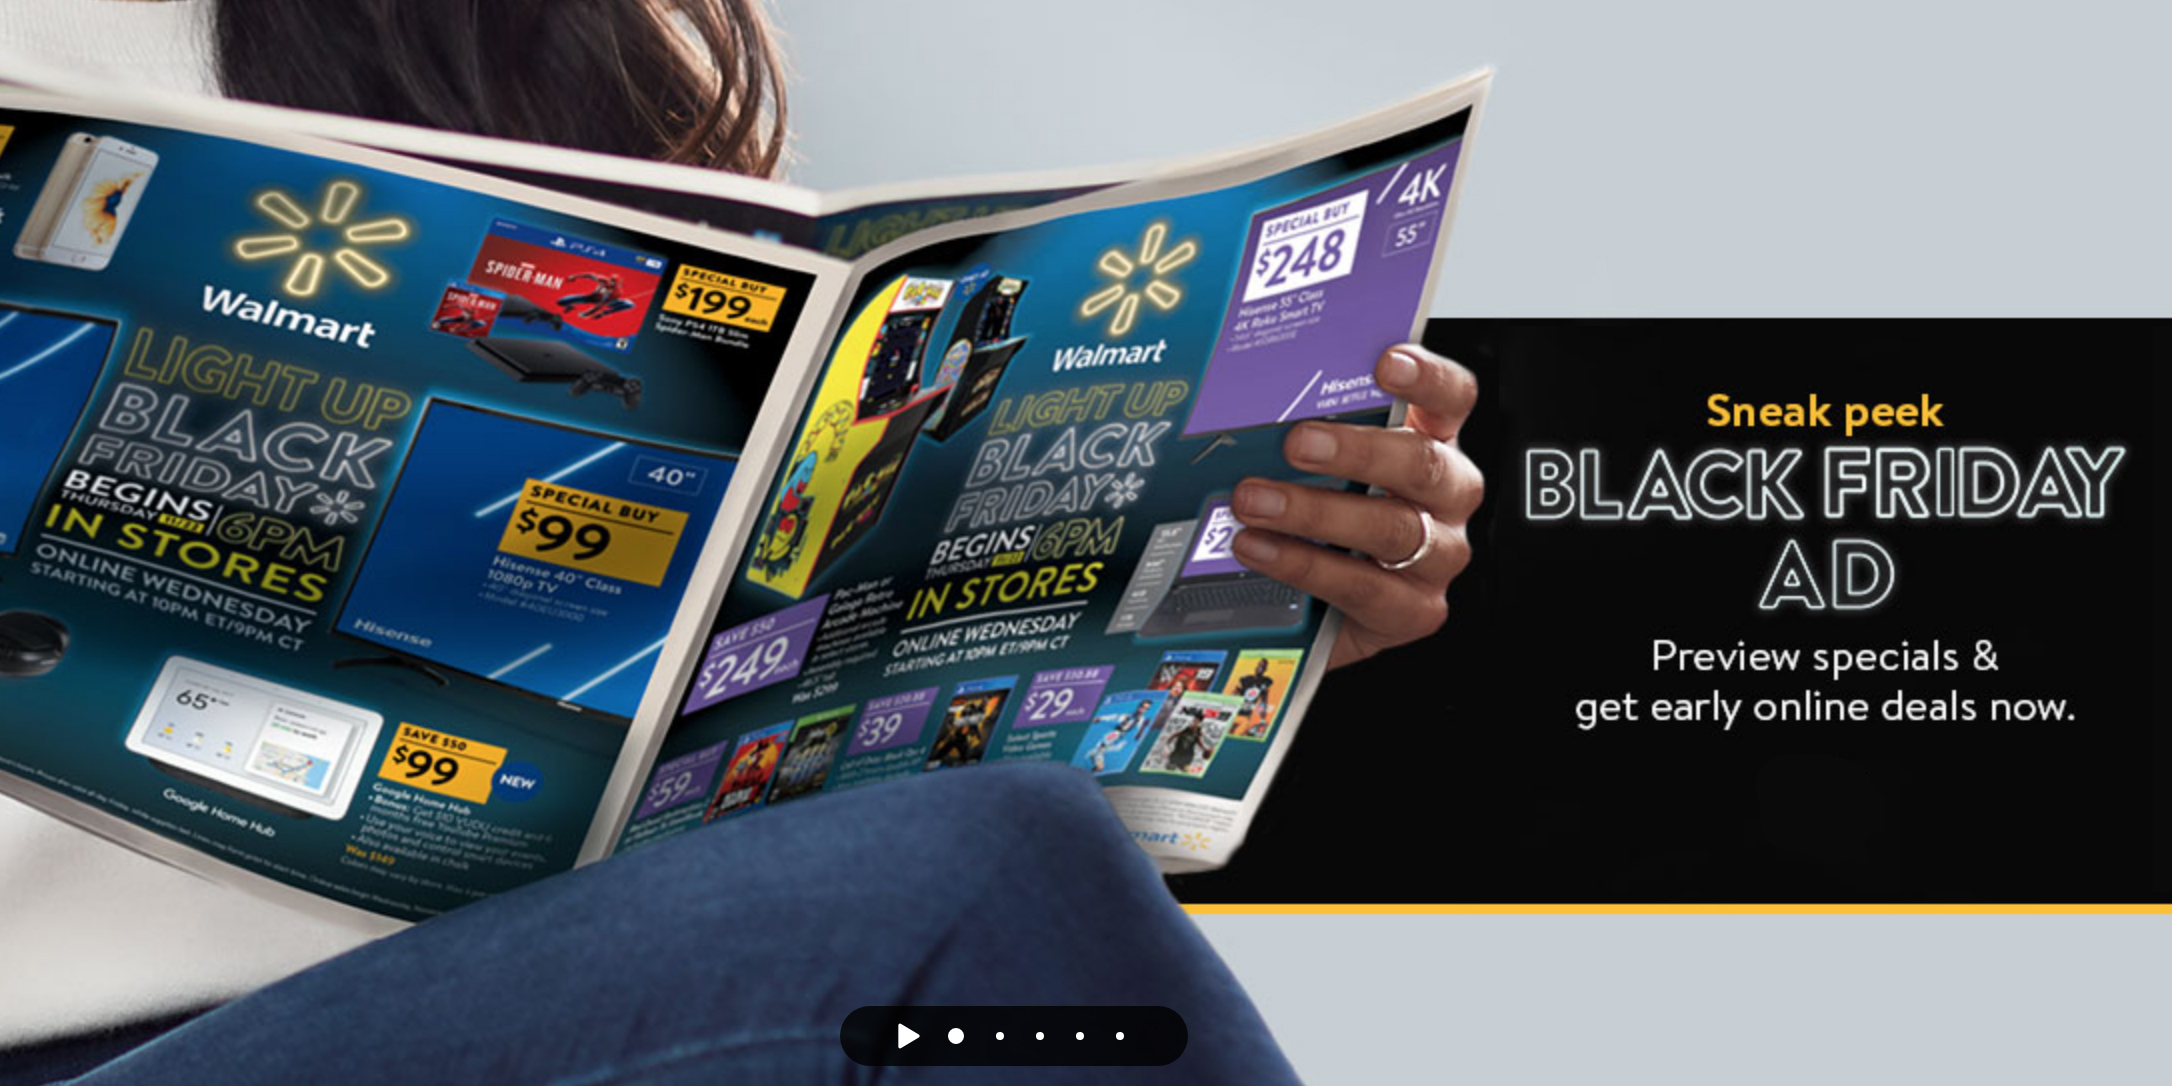 Walmart Black Friday ad: up to $400 gift card w/ iPhone or Android, 4K TVs, Xbox/PS4, much more